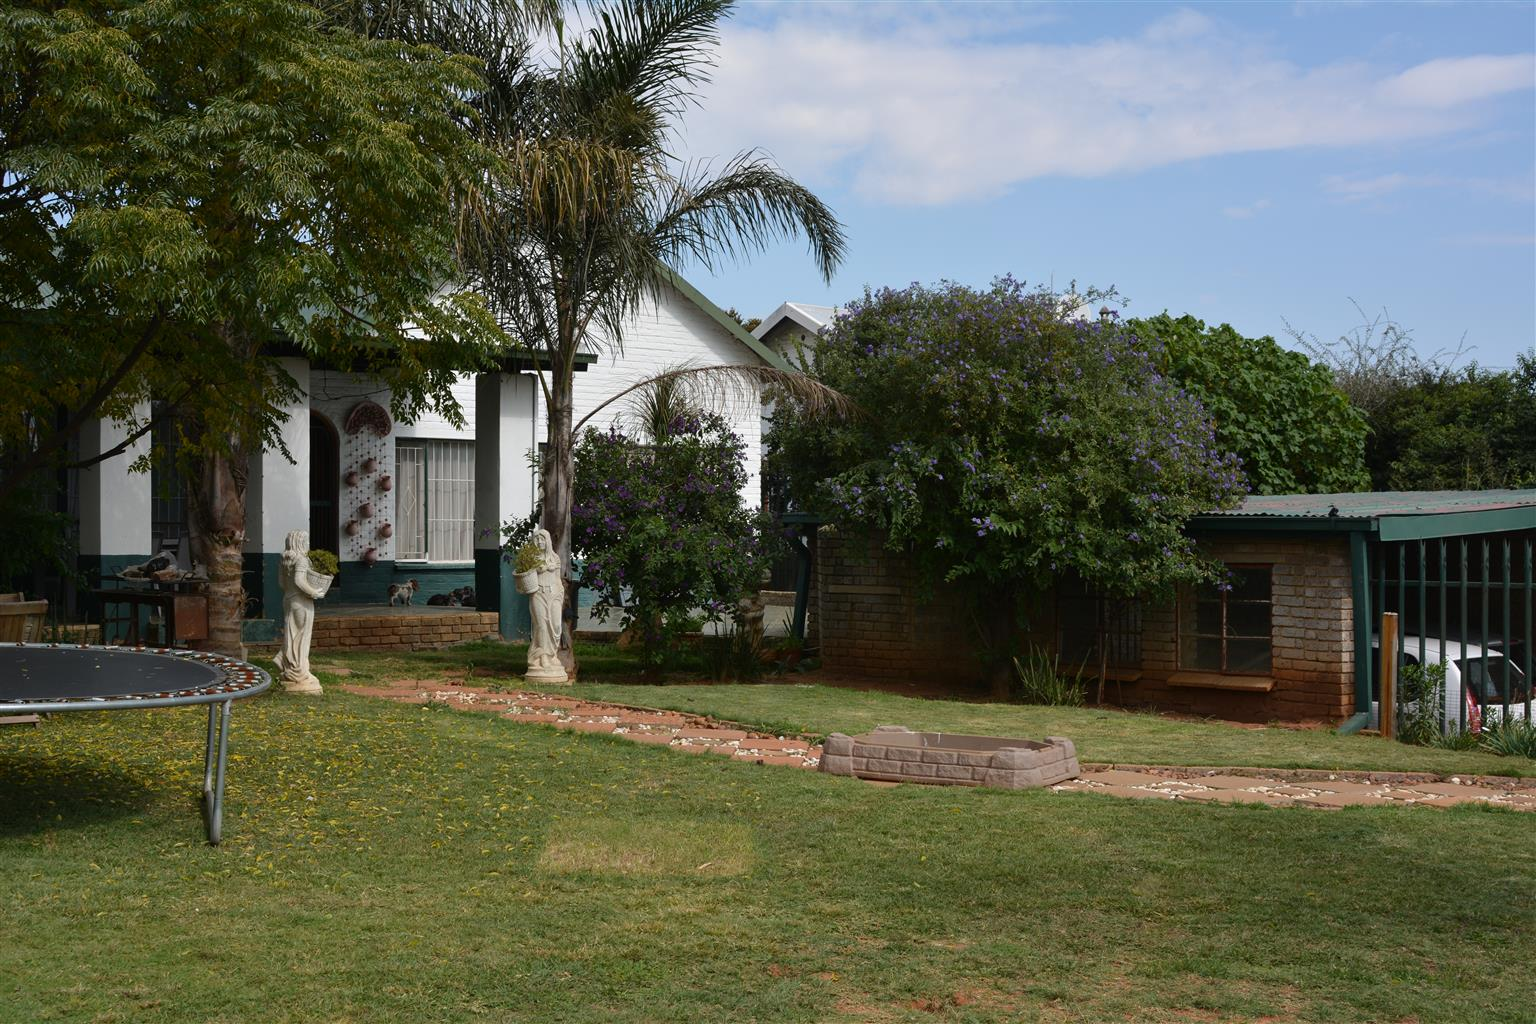 House to Rent with Flatlet or Additional Rooms - Wentworthpark, Krugersdorp